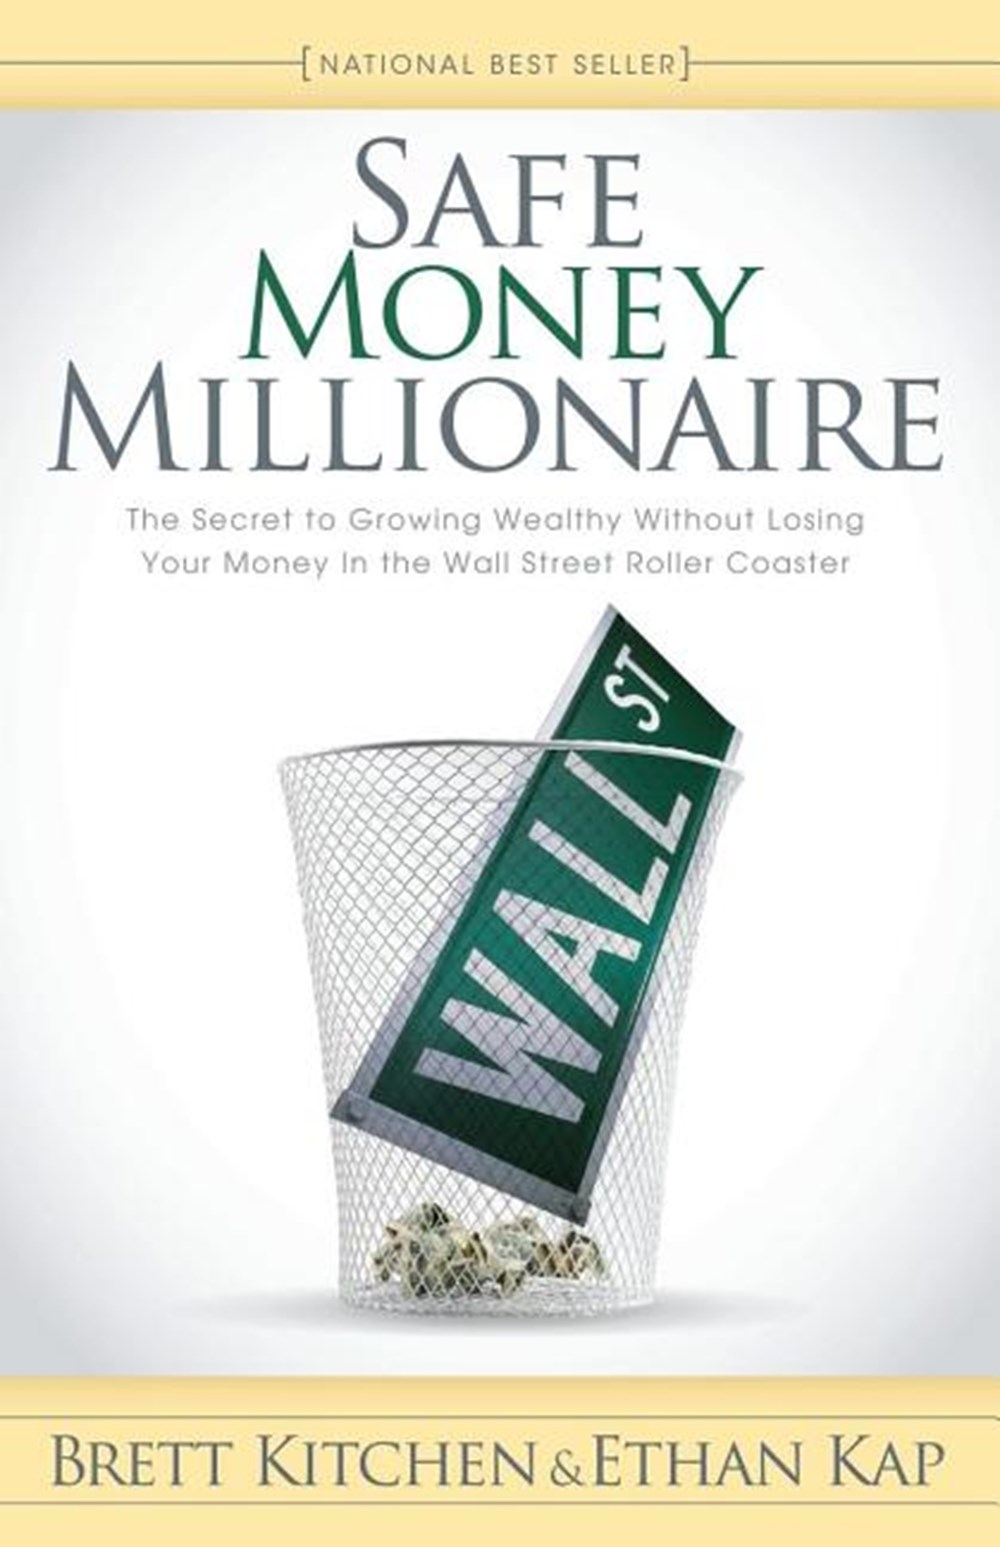 Safe Money Millionaire The Secret to Growing Wealthy Without Losing Your Money in the Wall Street Ro